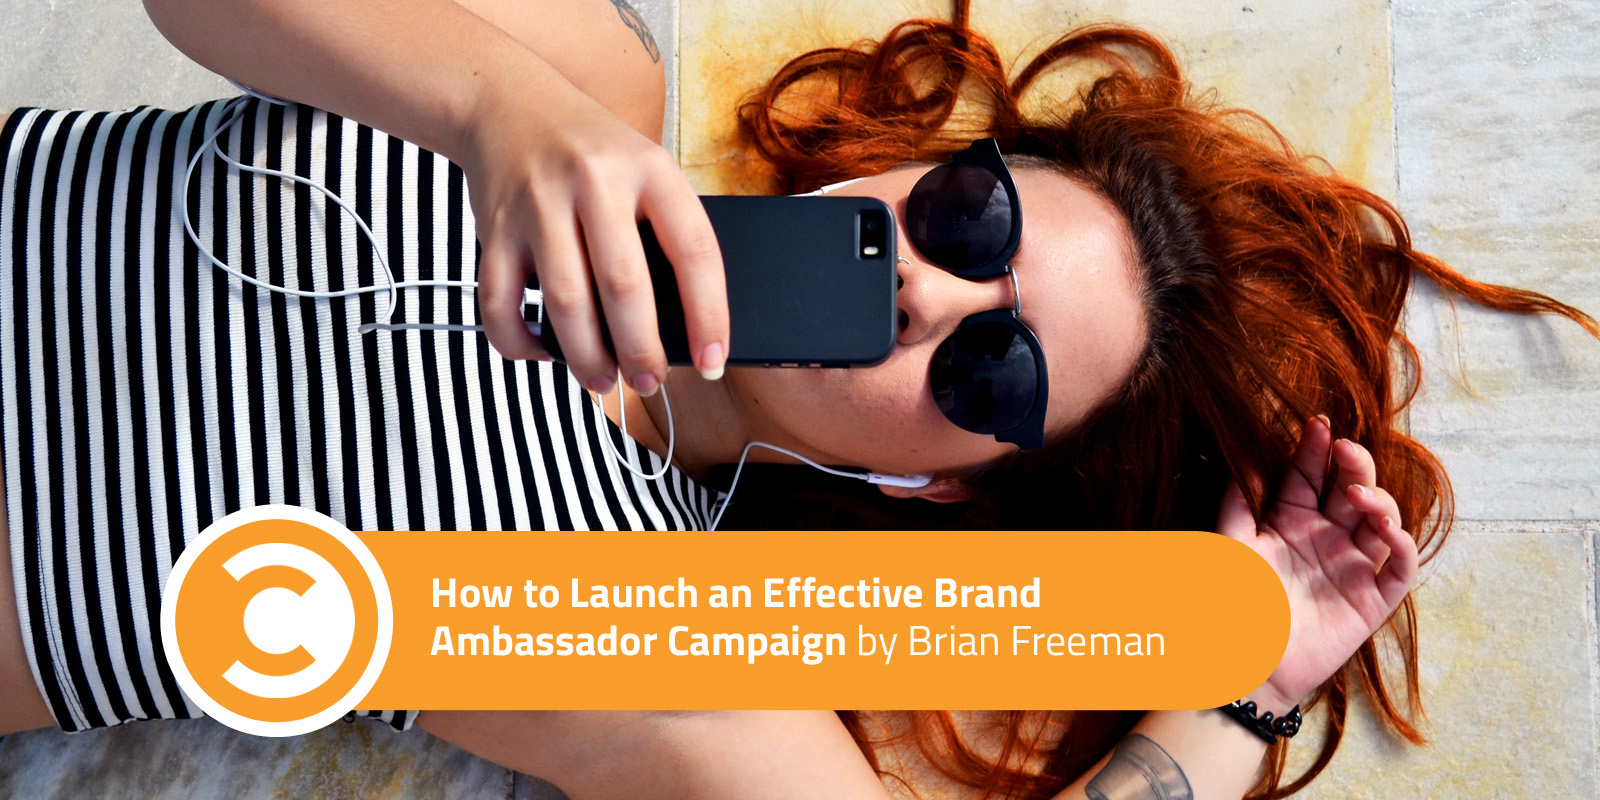 How to Launch an Effective Brand Ambassador Campaign